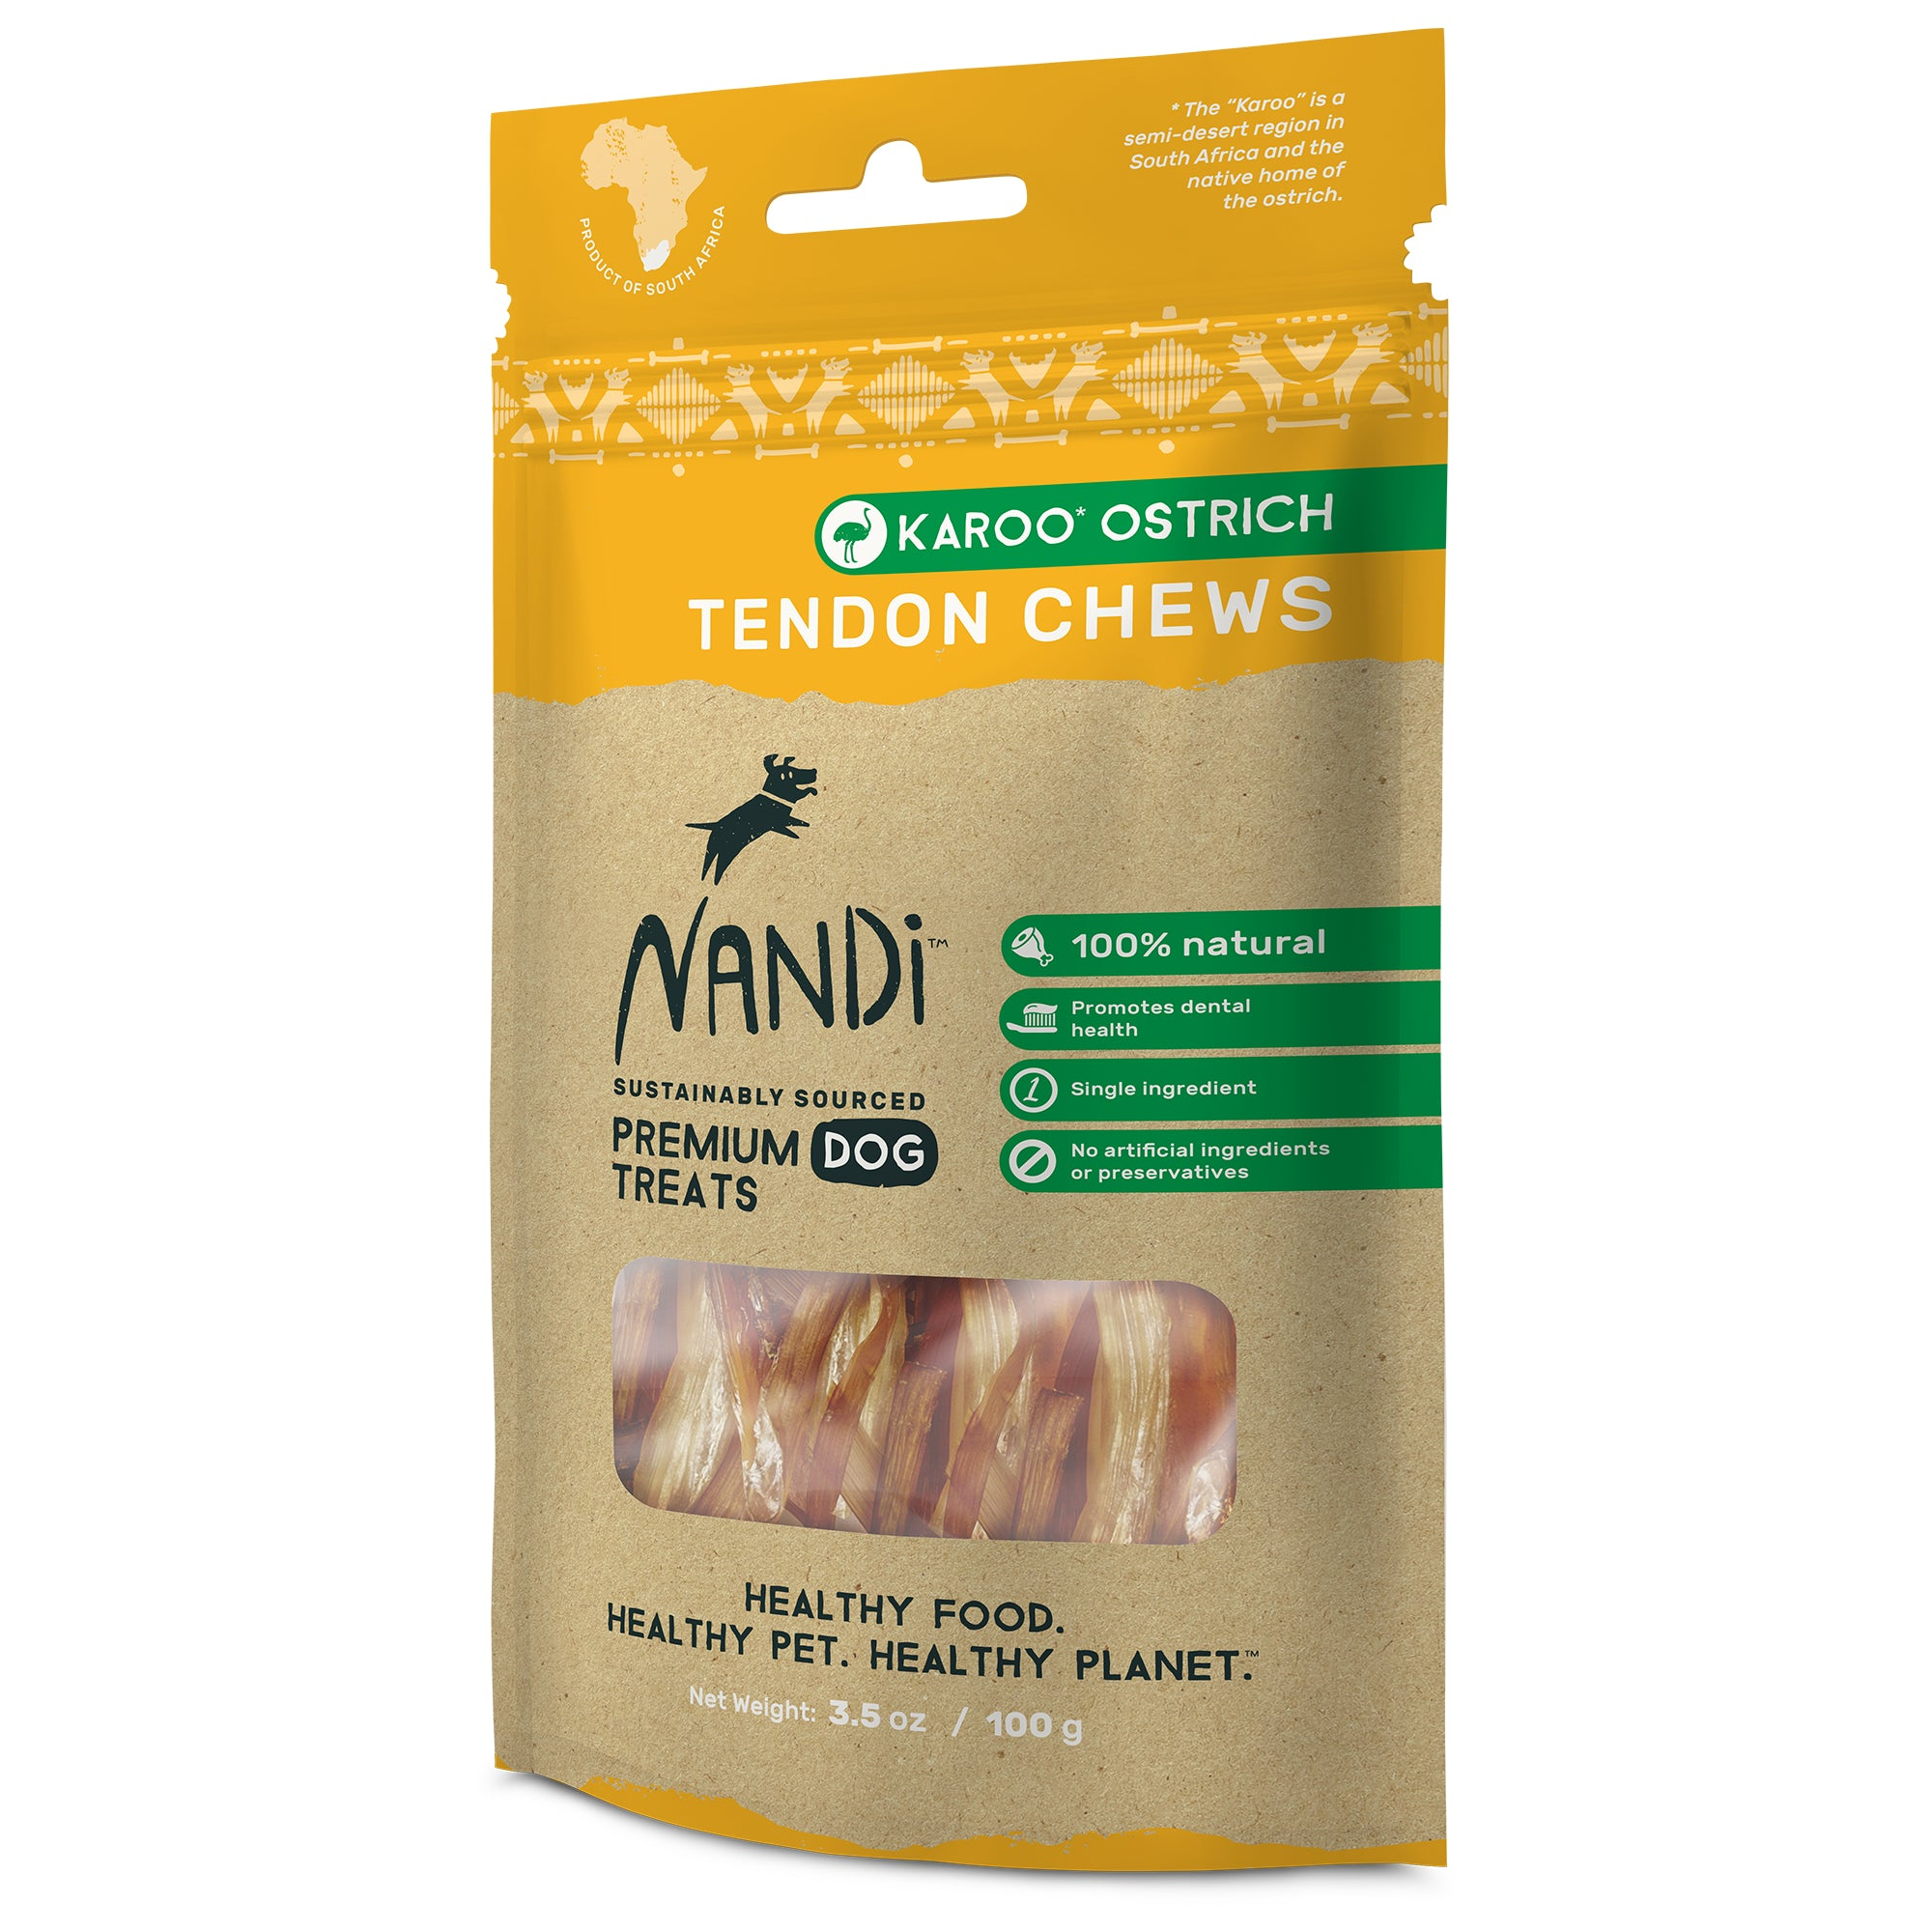 Nandi Tendon Chews Karoo Ostrich (100g)